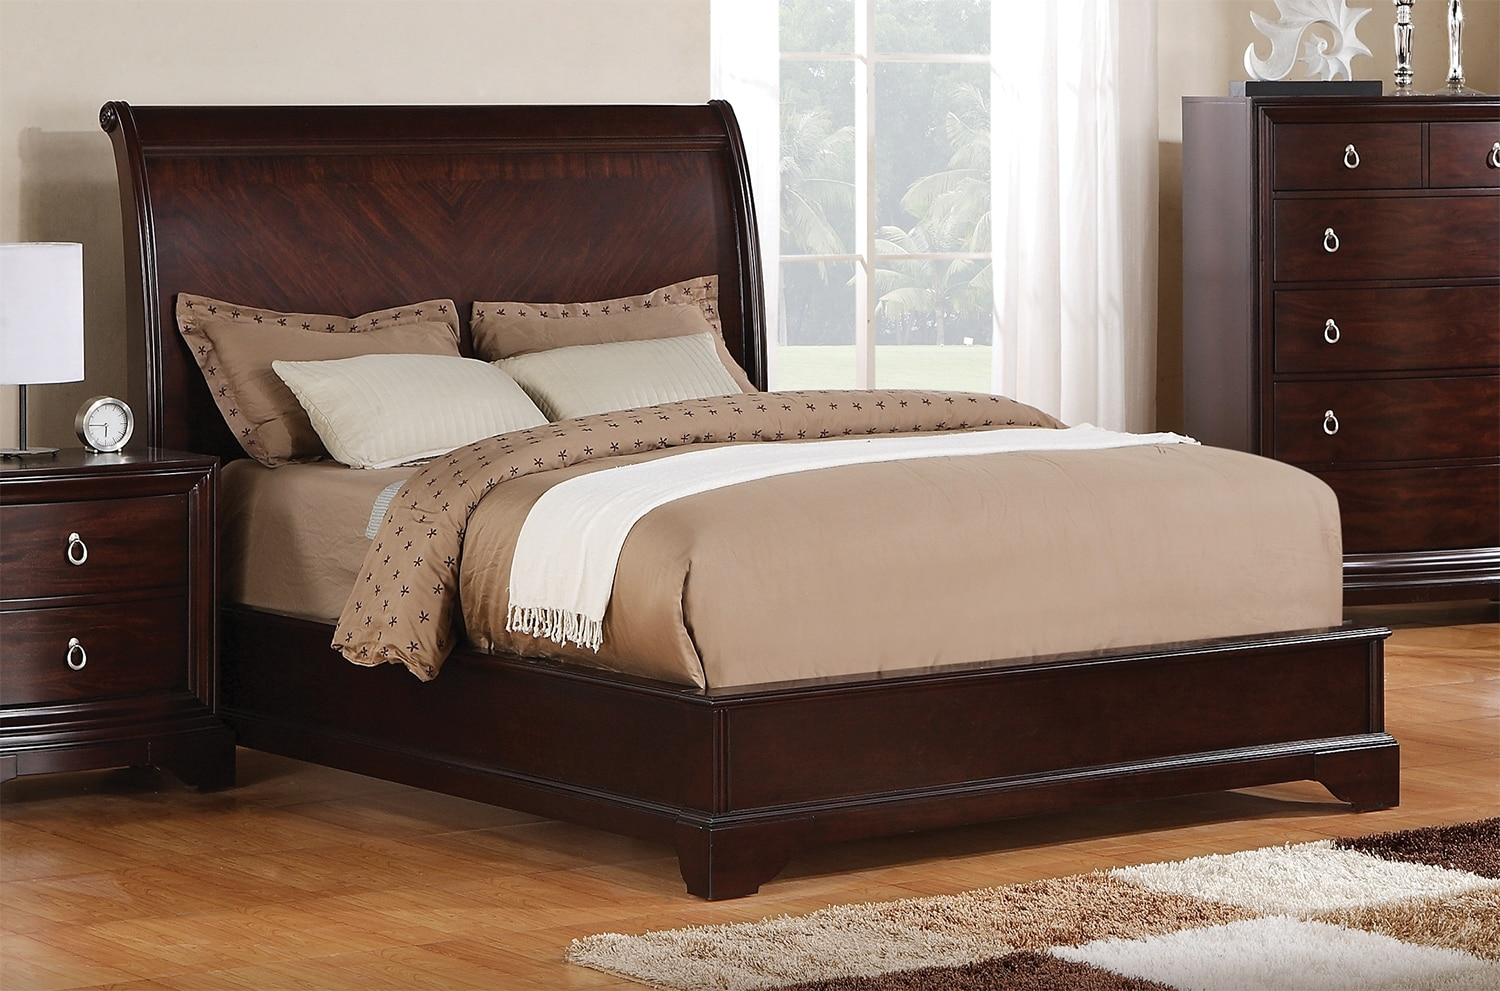 Queen Size Bed Leon 39 S